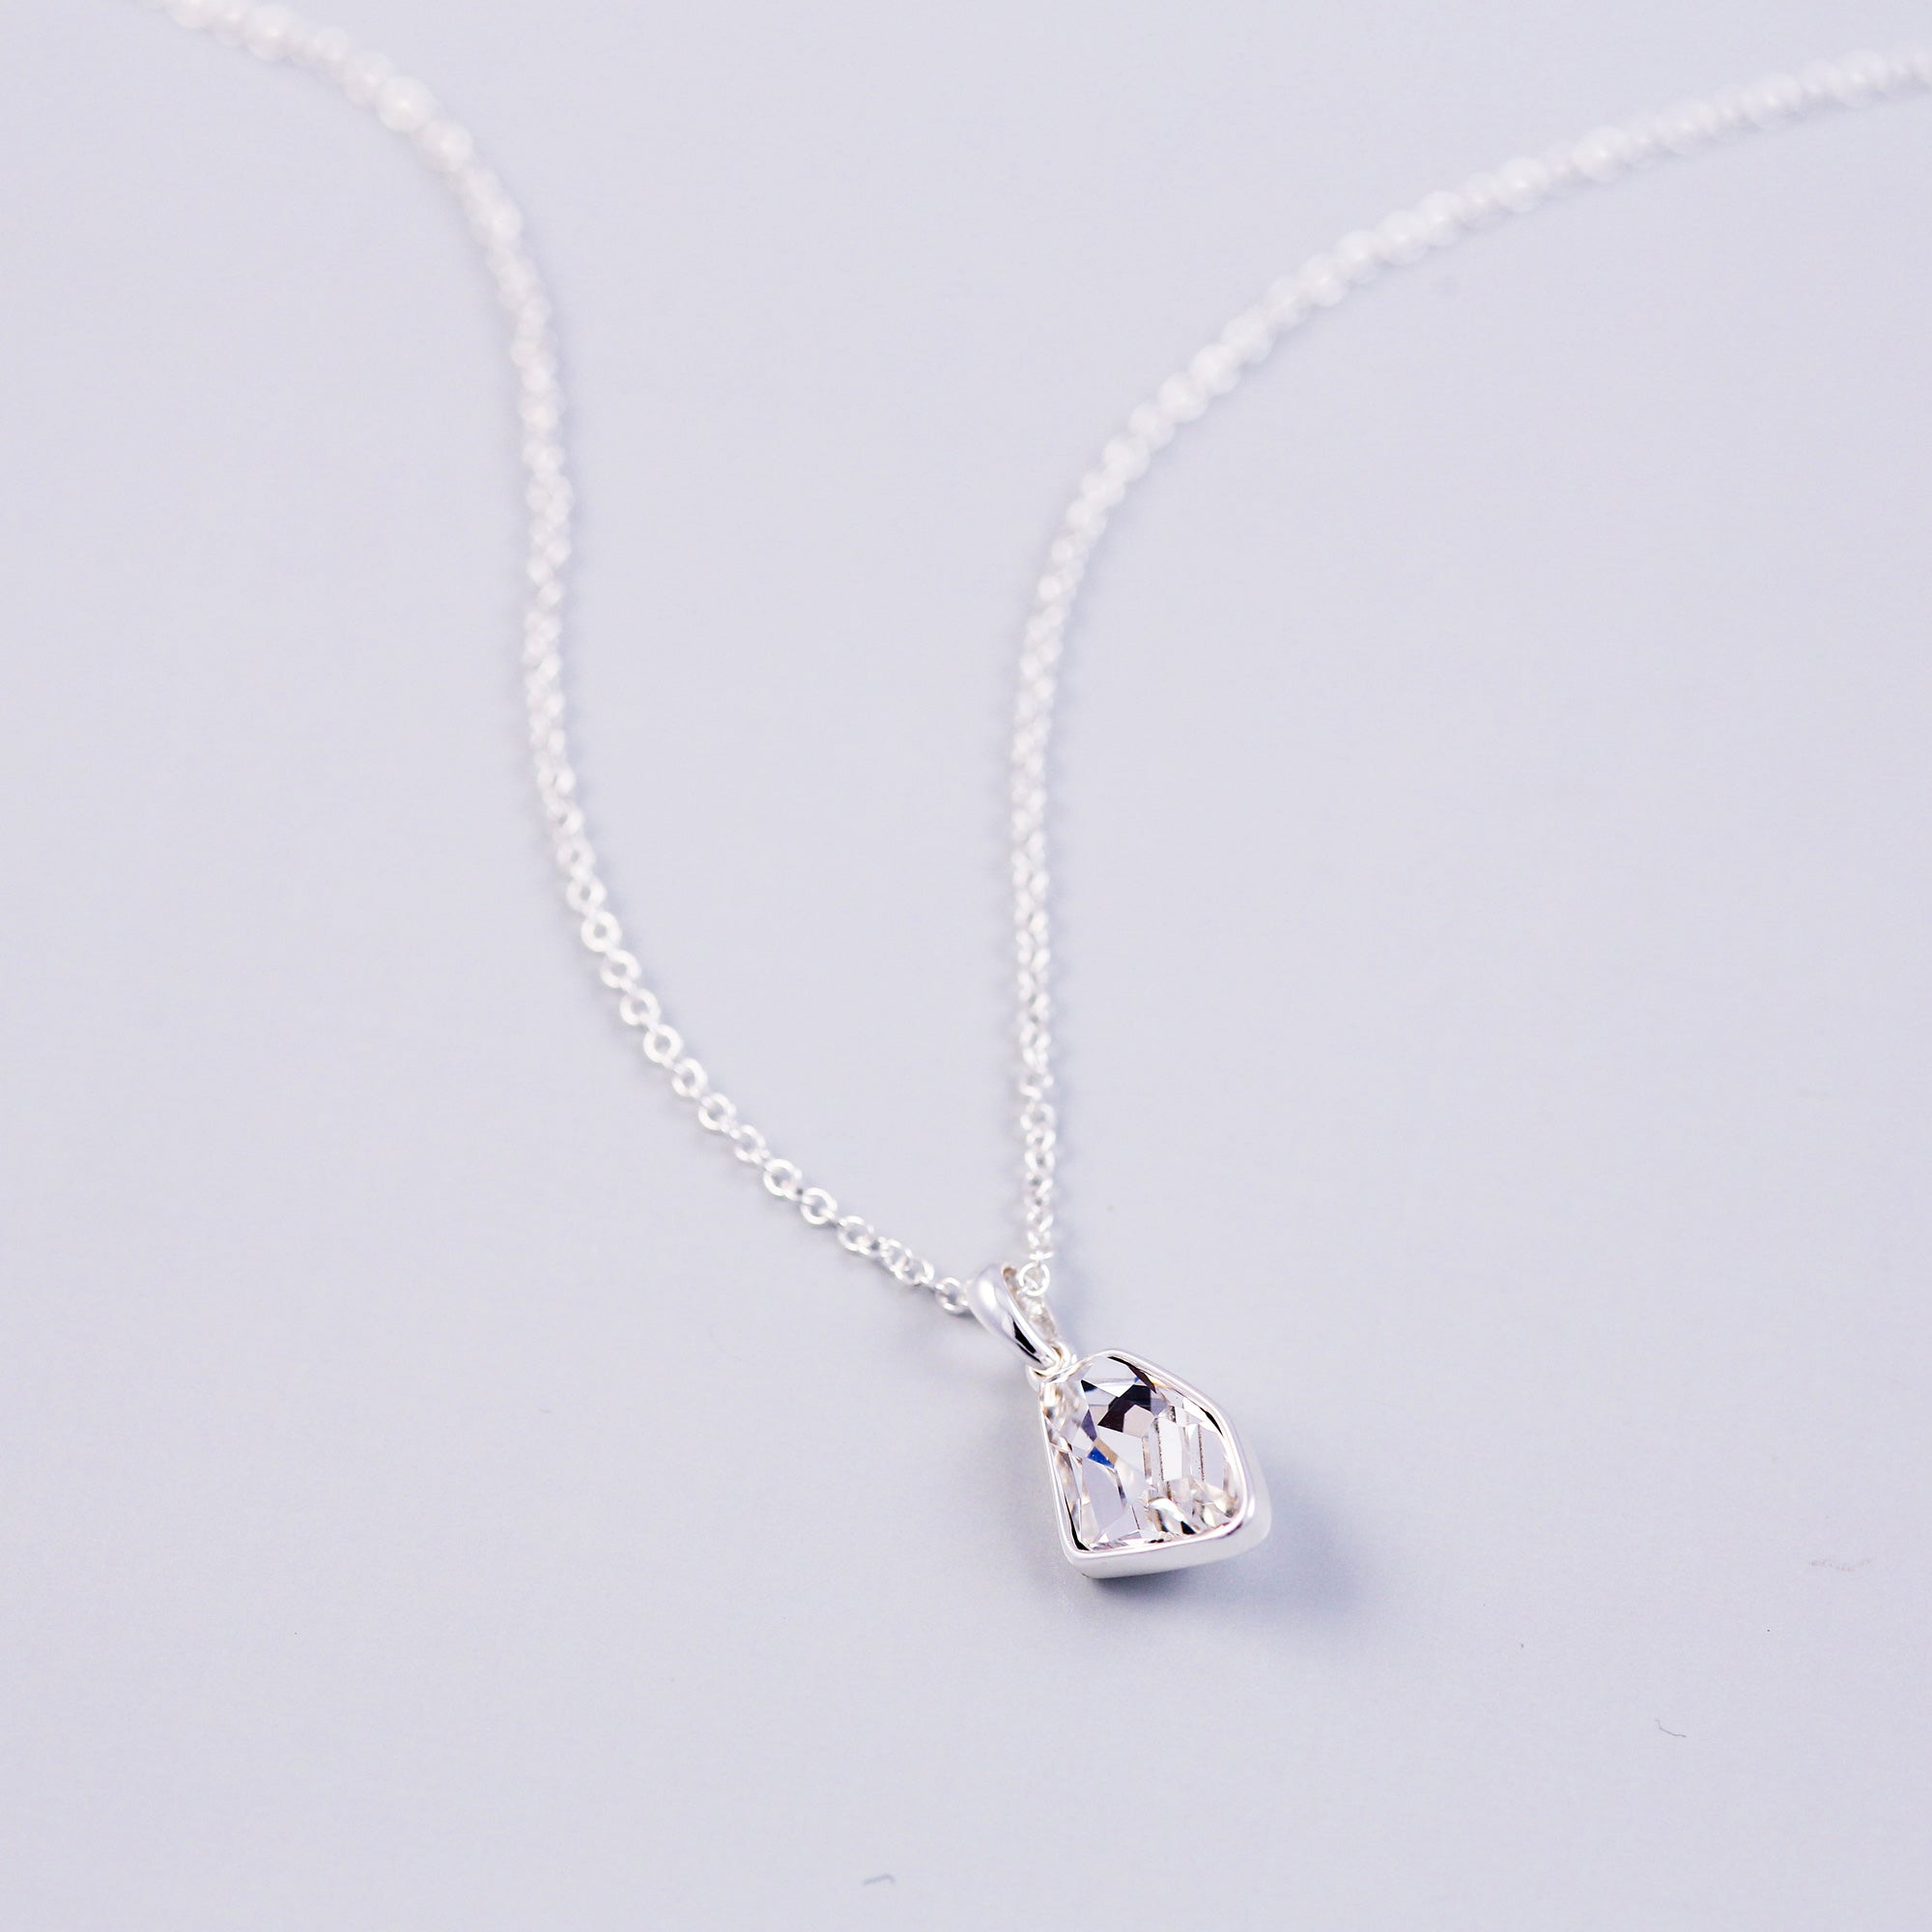 Silver & Crystal Asteroid Necklace